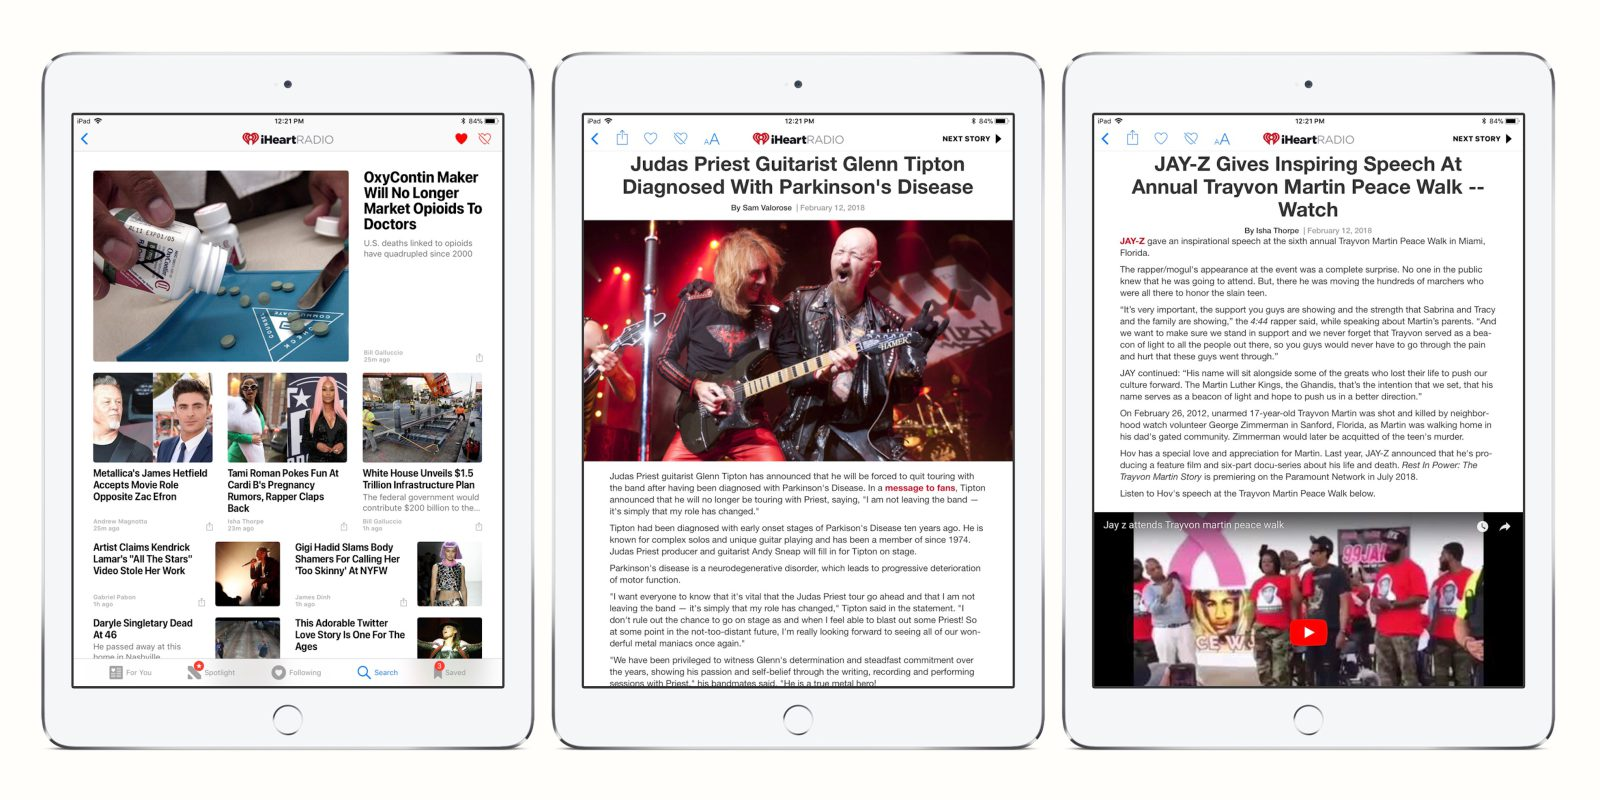 Flipboard CEO calls Apple News a 'product living in the past' in new interview apple-news-picks-up-iheartradio-entertainment-news-in-latest-publisher-expansion